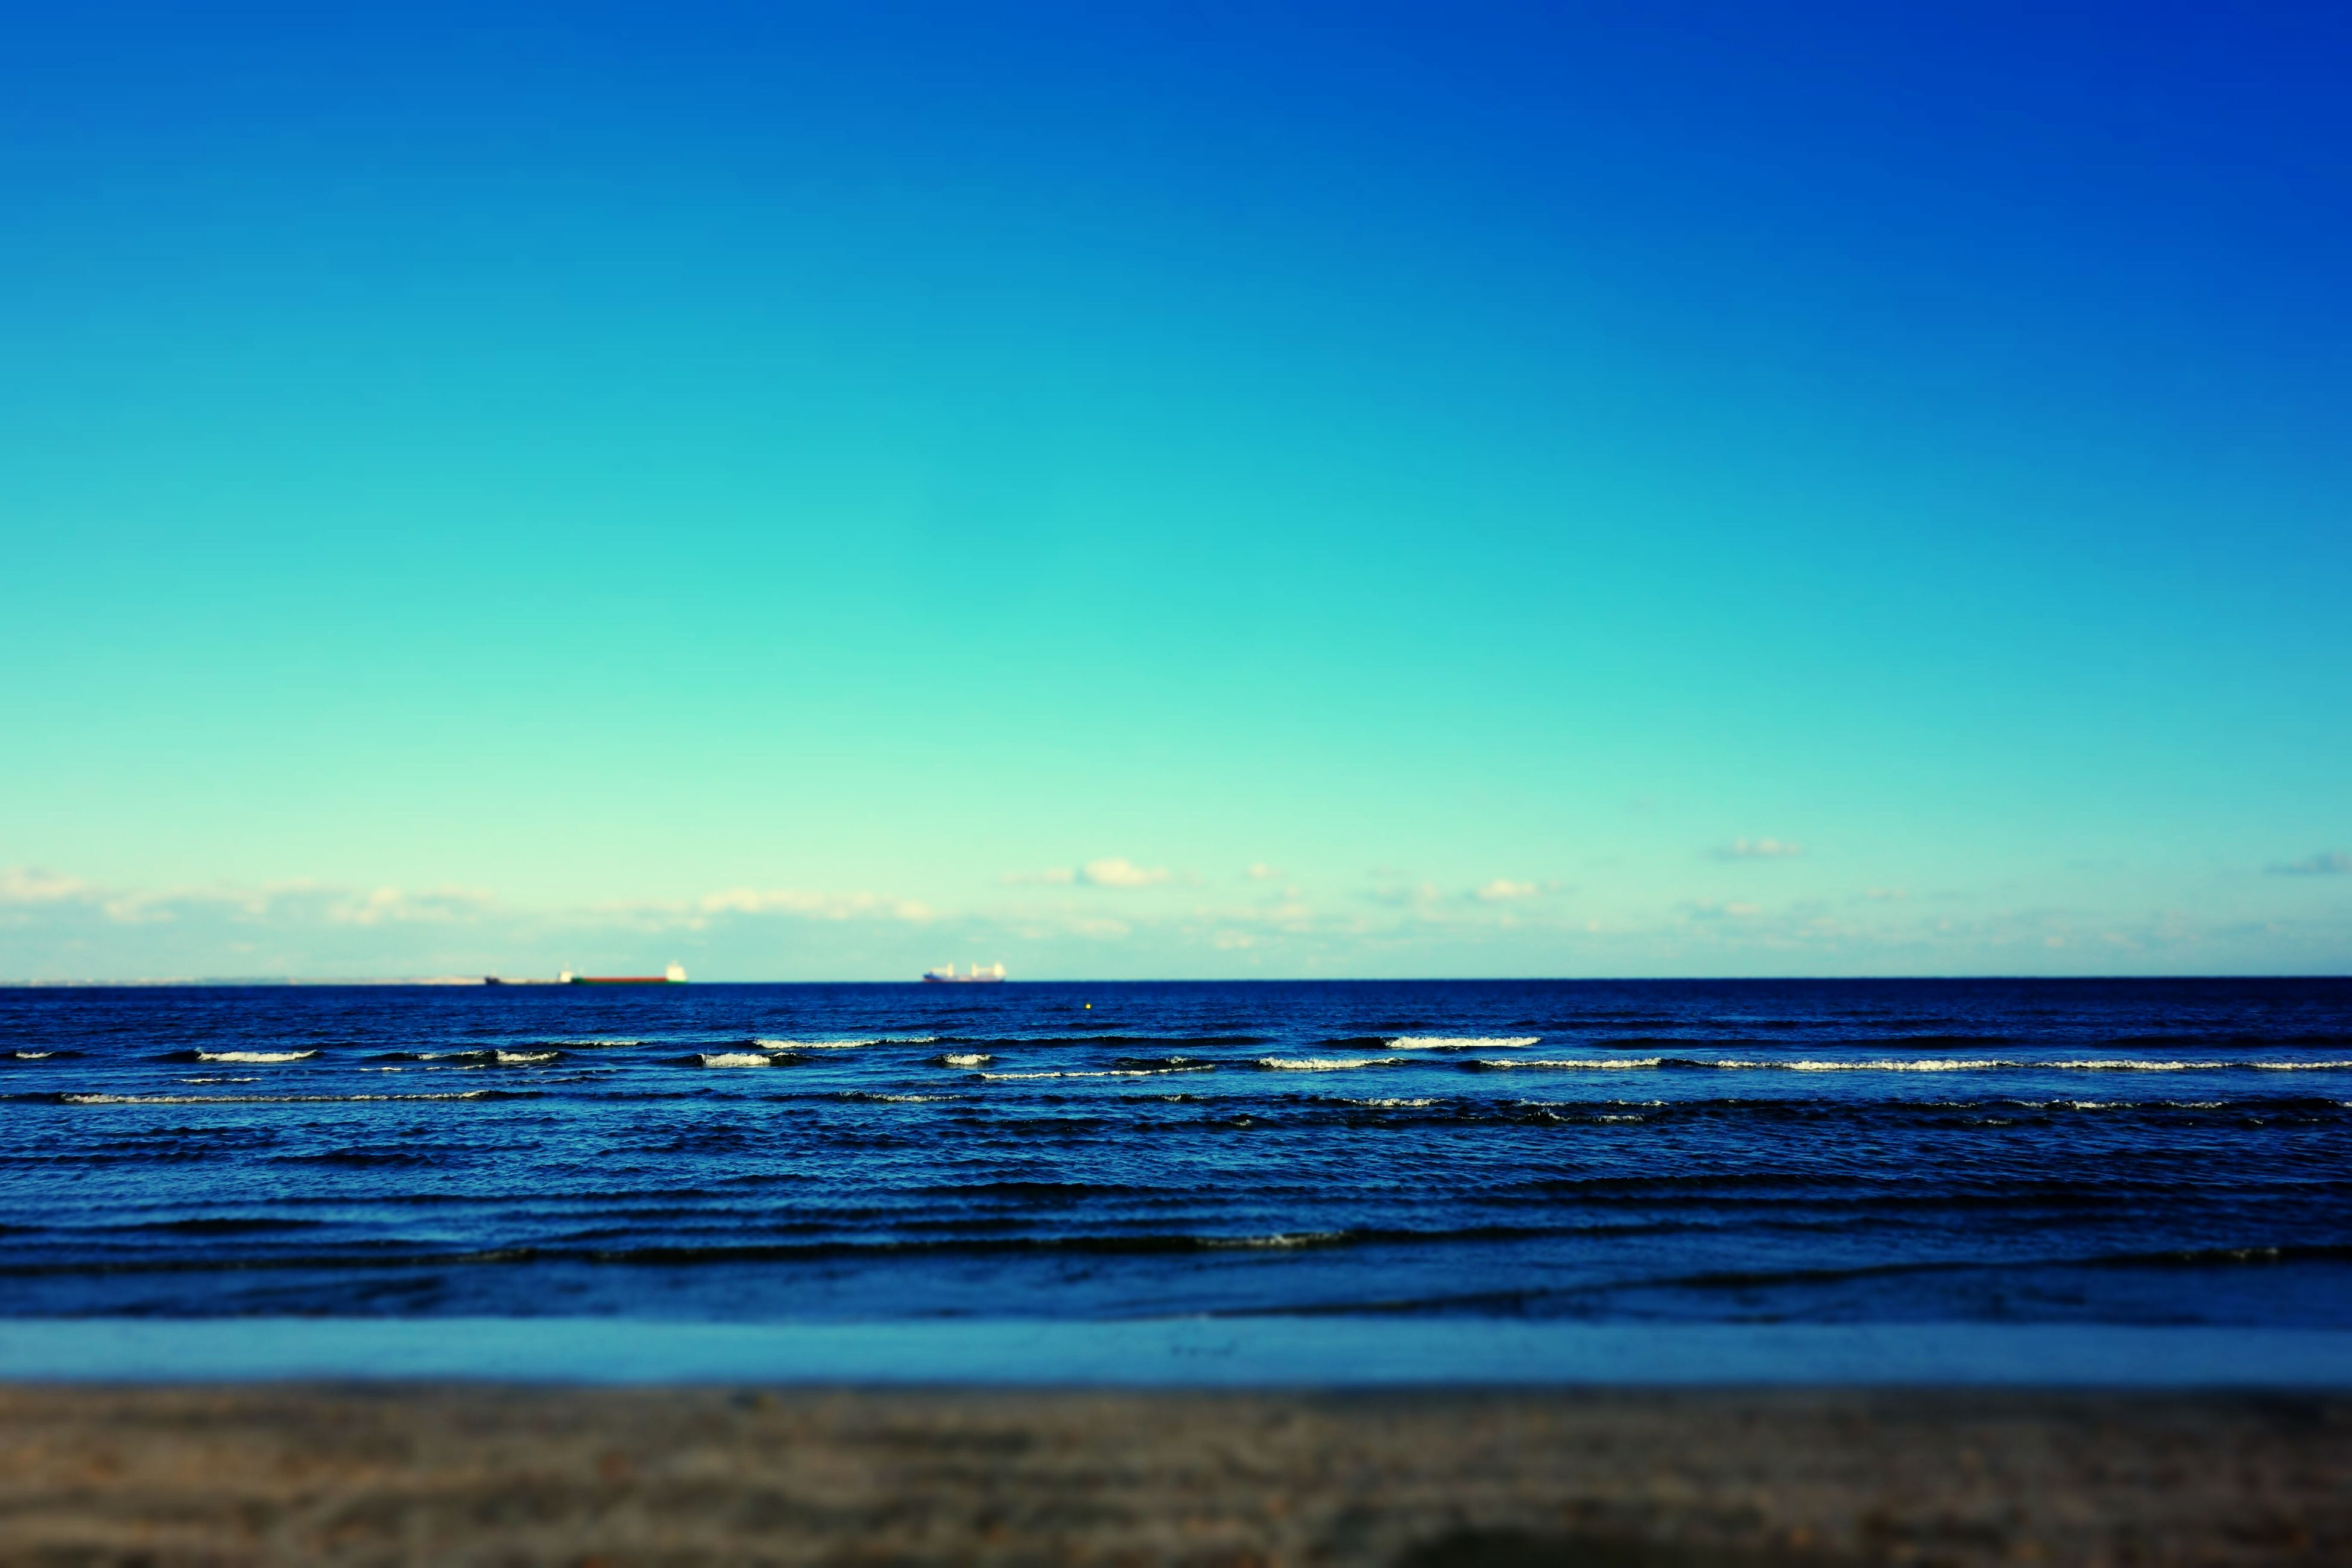 sea, water, horizon over water, beauty in nature, blue, nature, tranquility, scenics, tranquil scene, beach, clear sky, no people, sky, outdoors, day